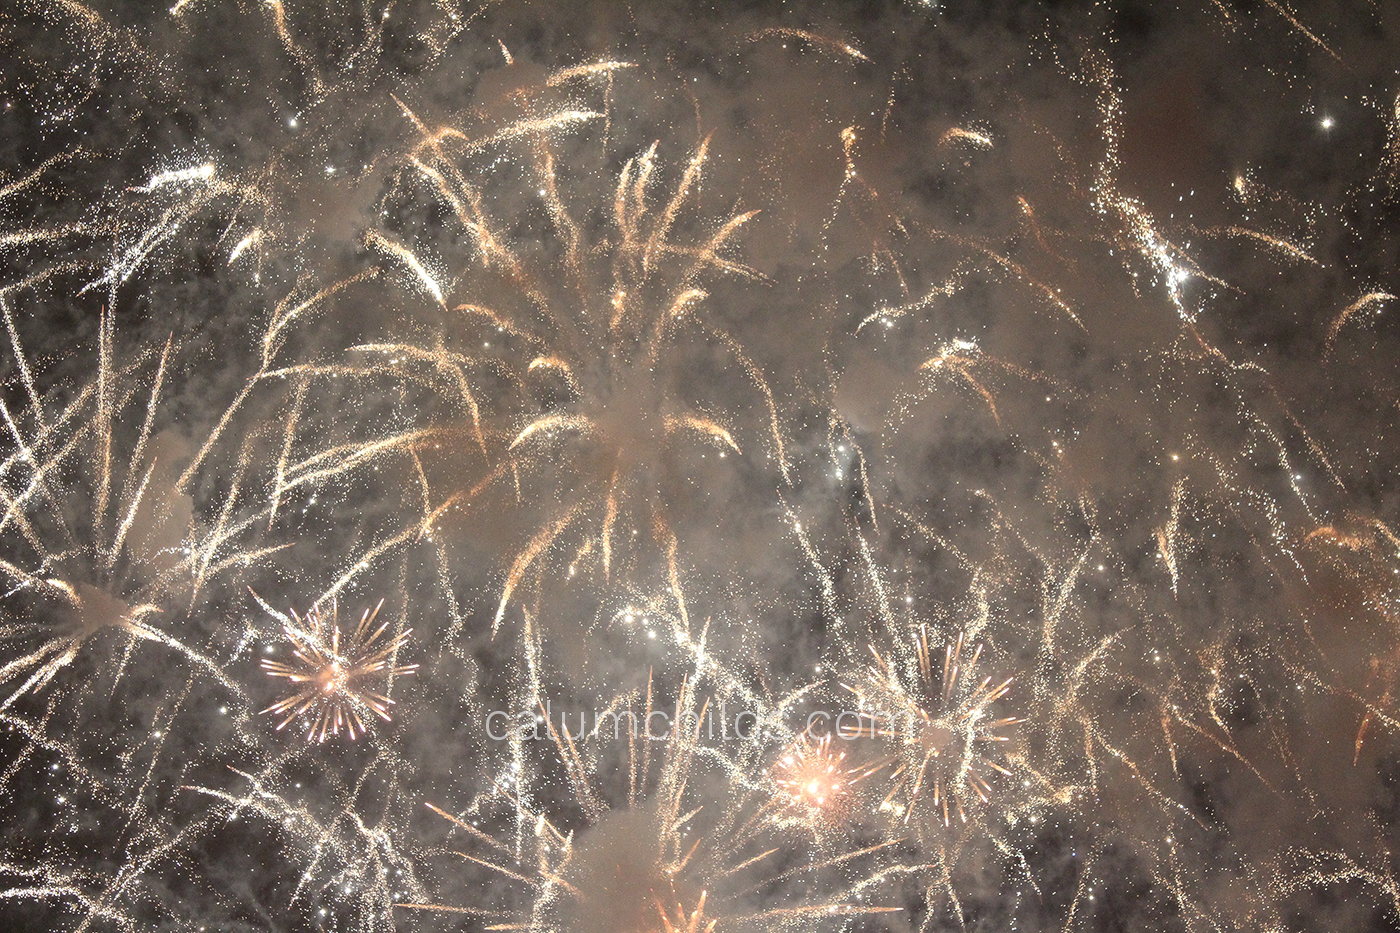 Gold fireworks explode in the sky, with smoke being emitted from all angles.